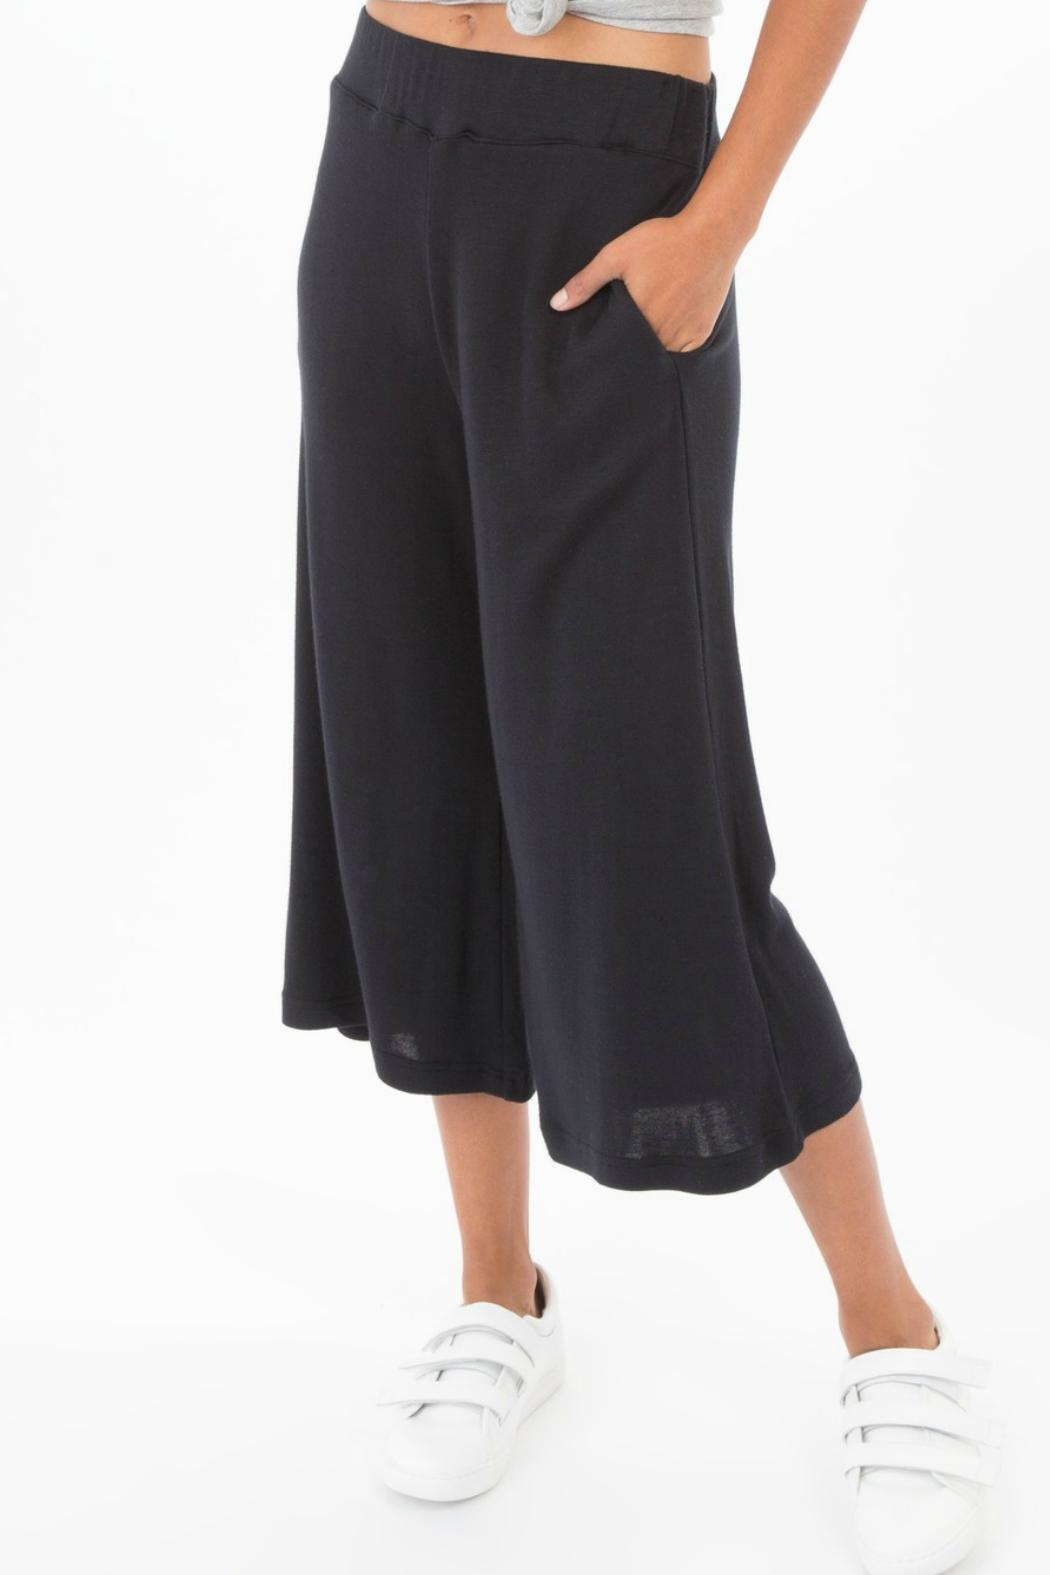 z supply Lush Modal Culottes - Front Full Image